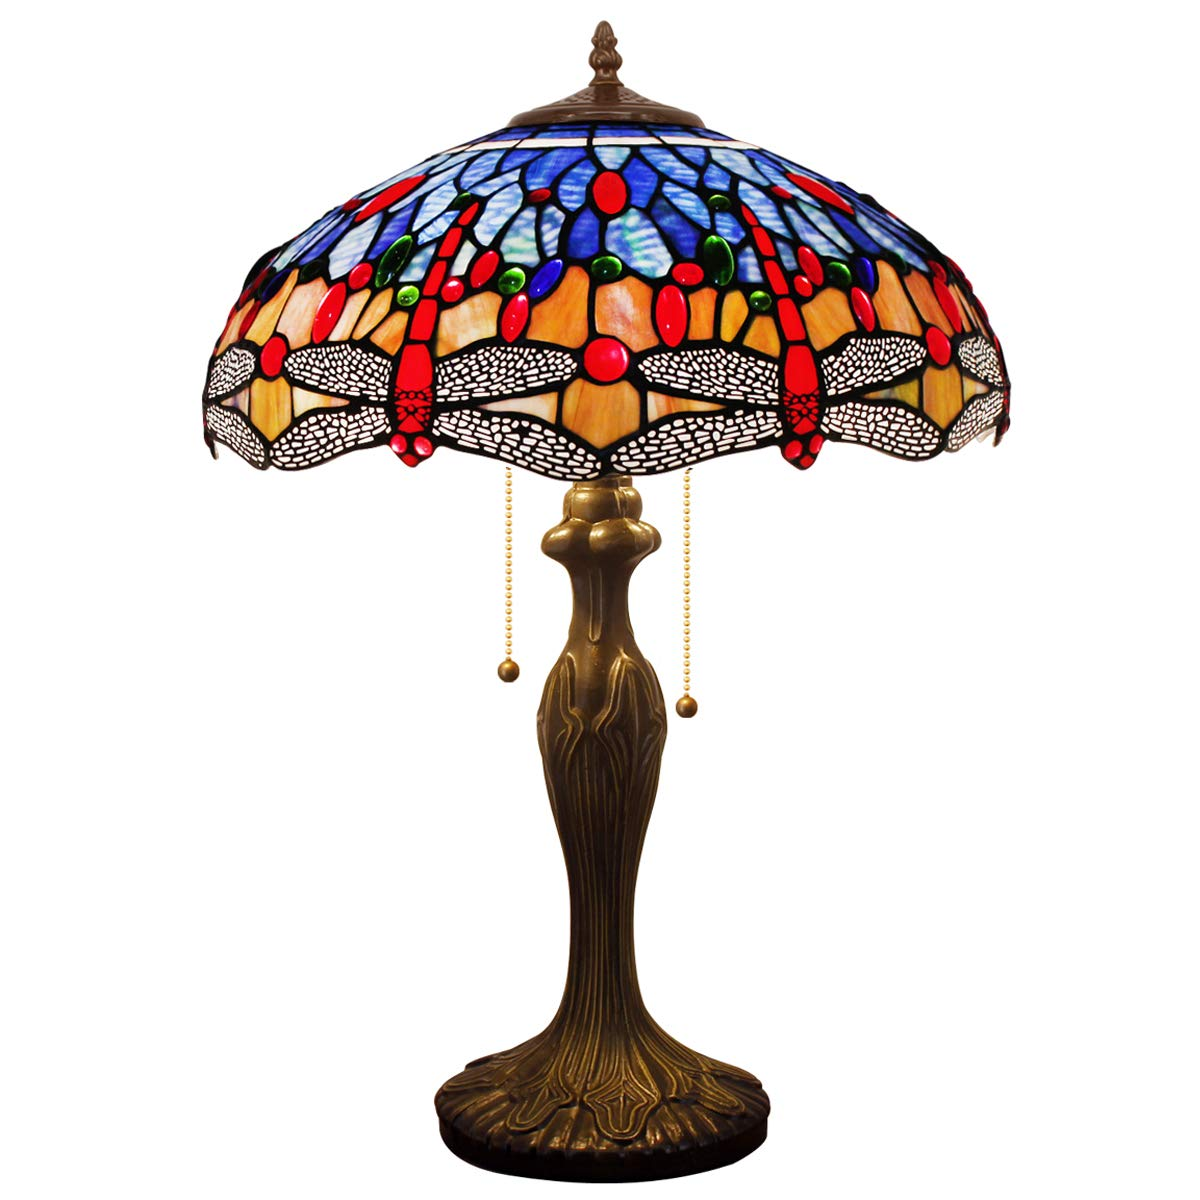 Tiffany Style Table Desk Beside Lamp 24 Inch Tall Blue Orange Stained Glass Shade Crystal Bead 2 Light Antique Zinc Base for Living Room Bedroom Dresser Bookcase S688 WERFACTORY